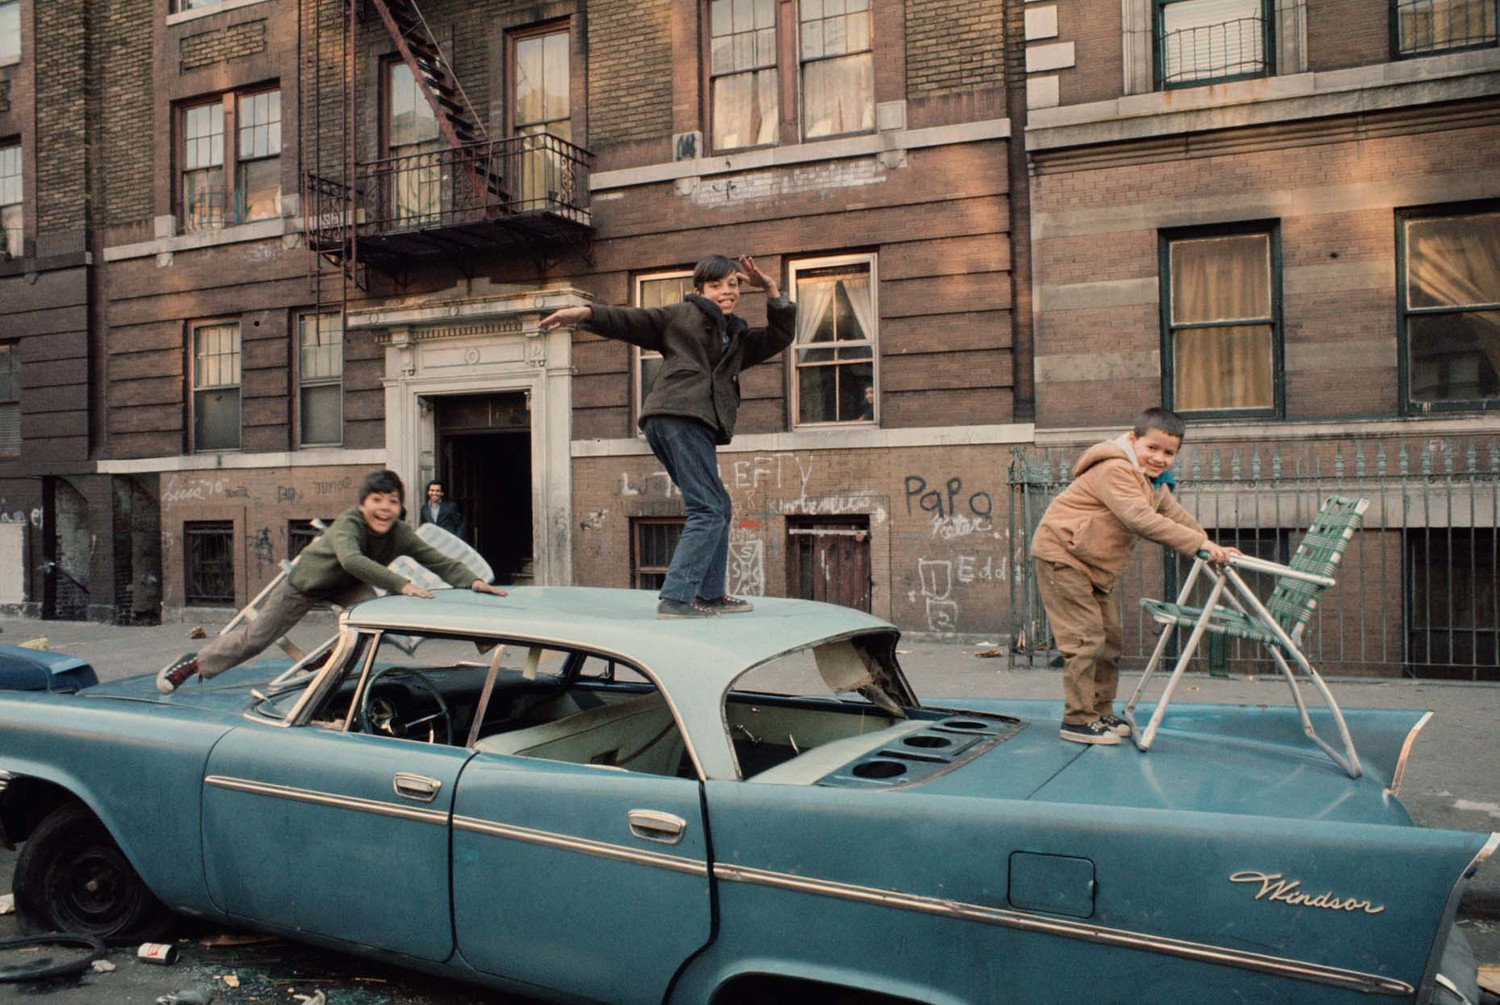 Kids playing on an abandoned car in South Bronx, 1970